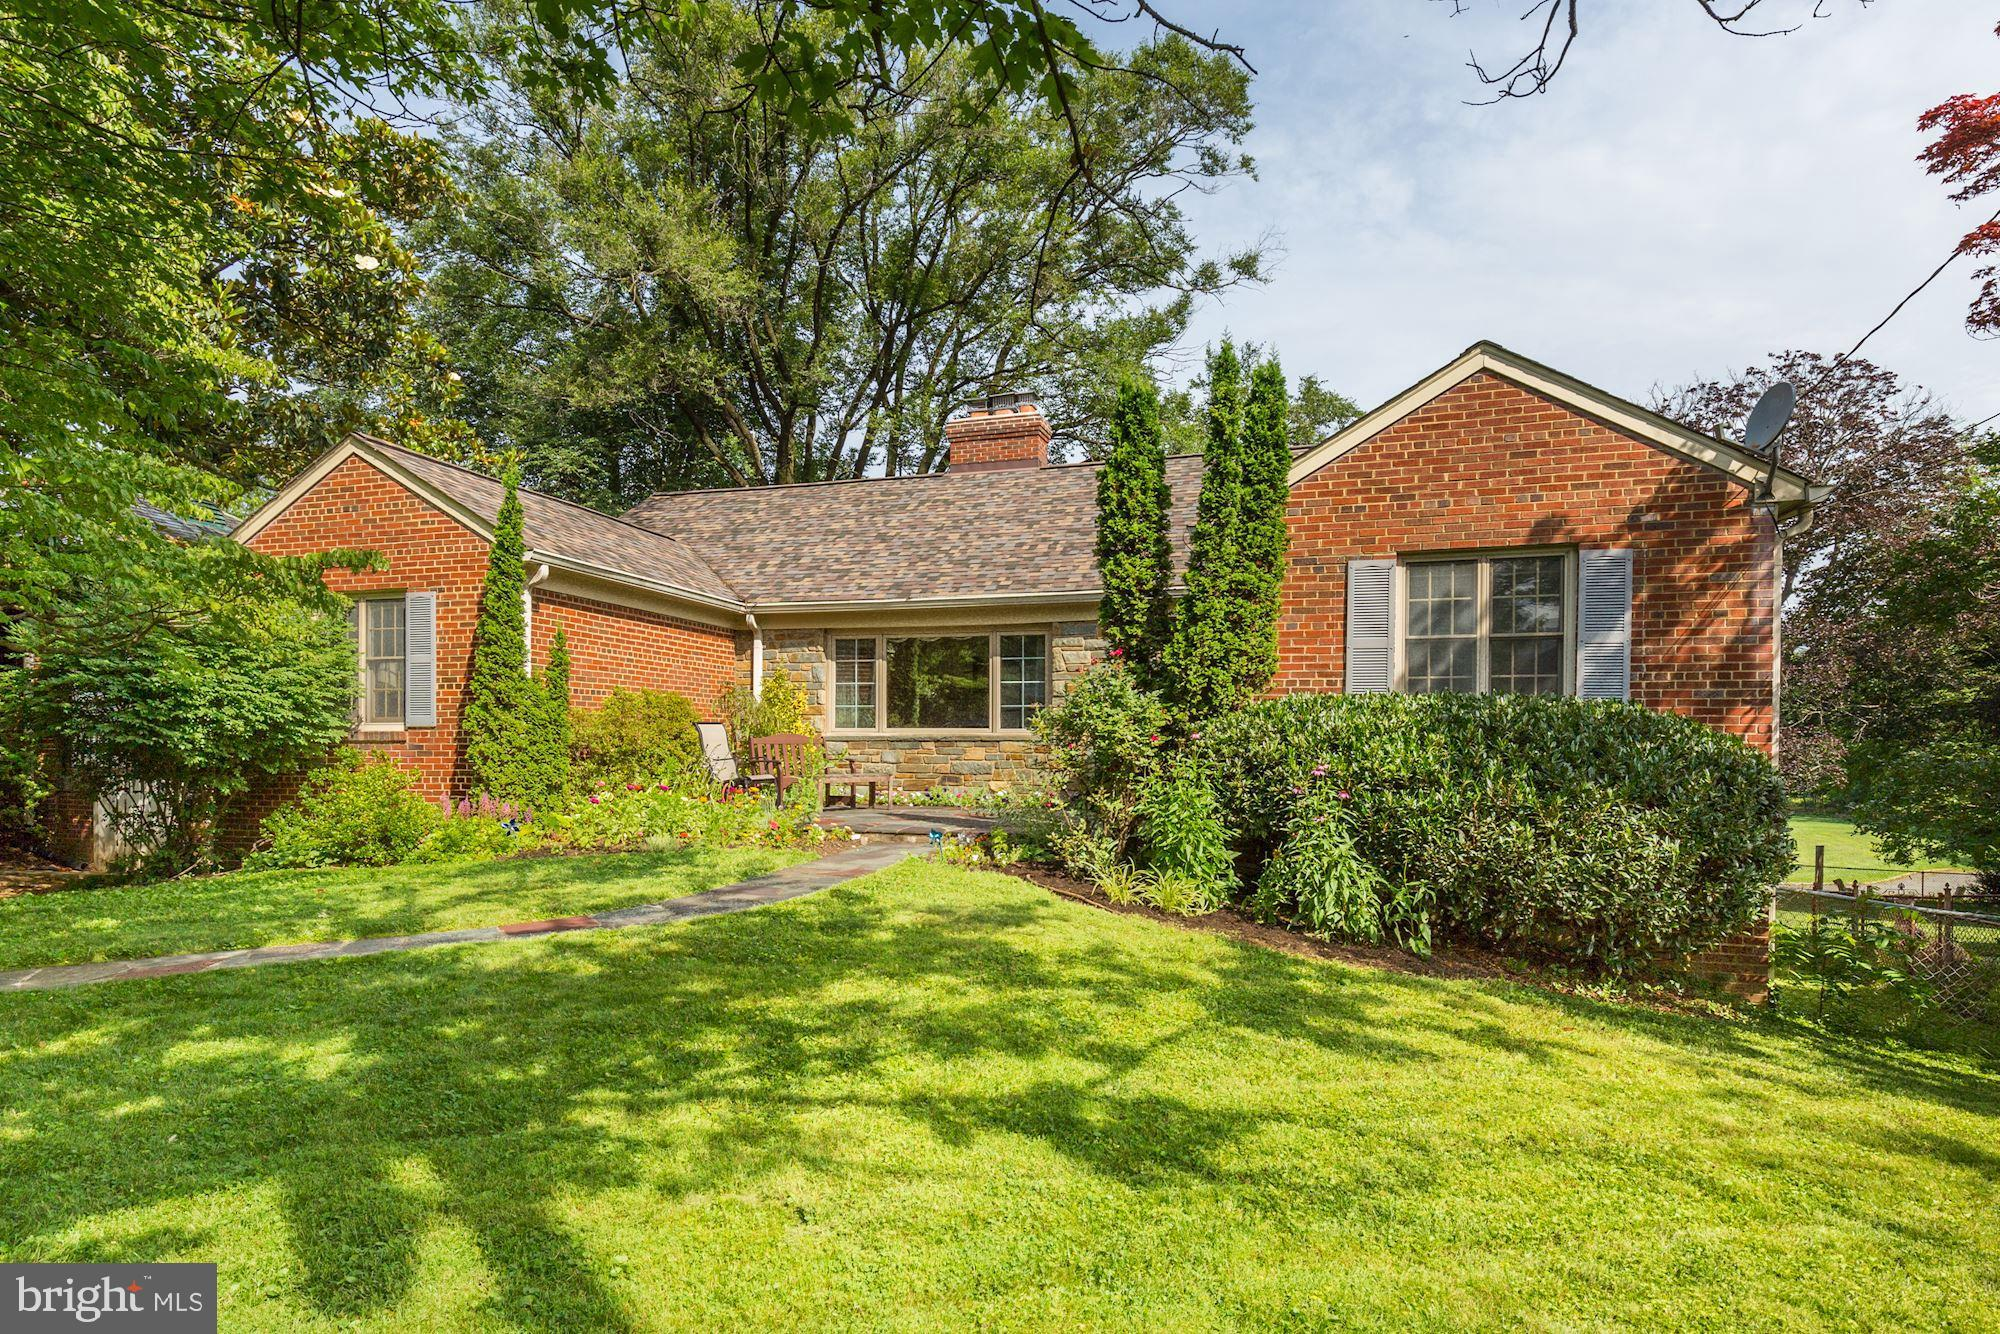 115 SAINT LAWRENCE DRIVE, SILVER SPRING, MD 20901